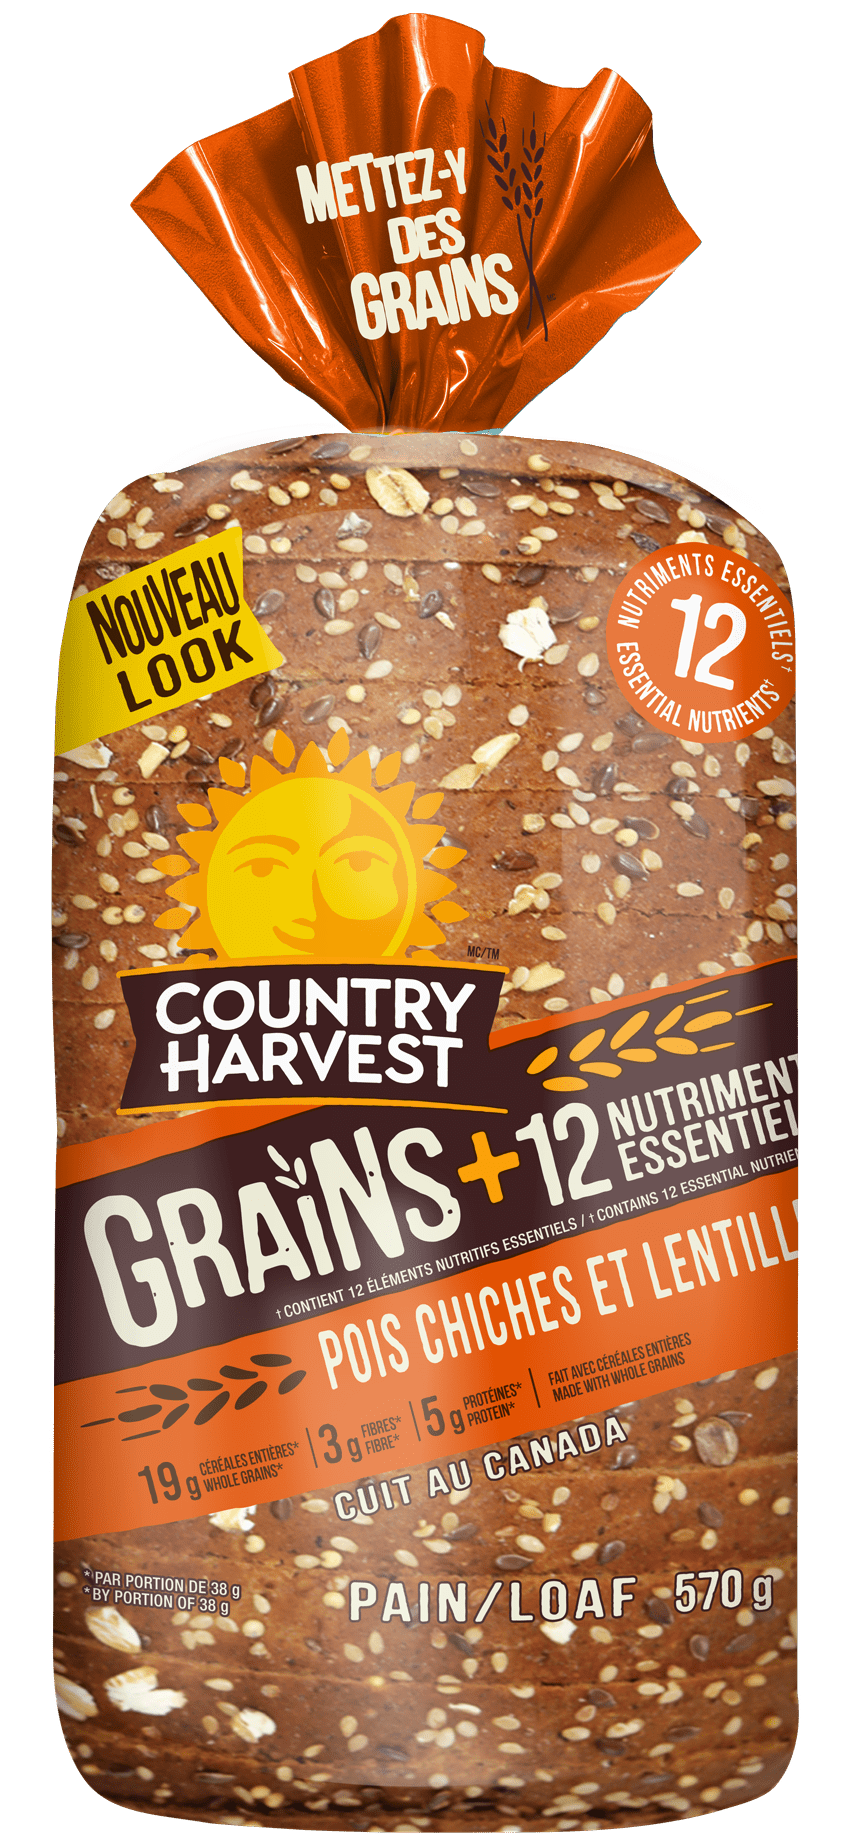 Country Harvest Pois Chiches et lentill